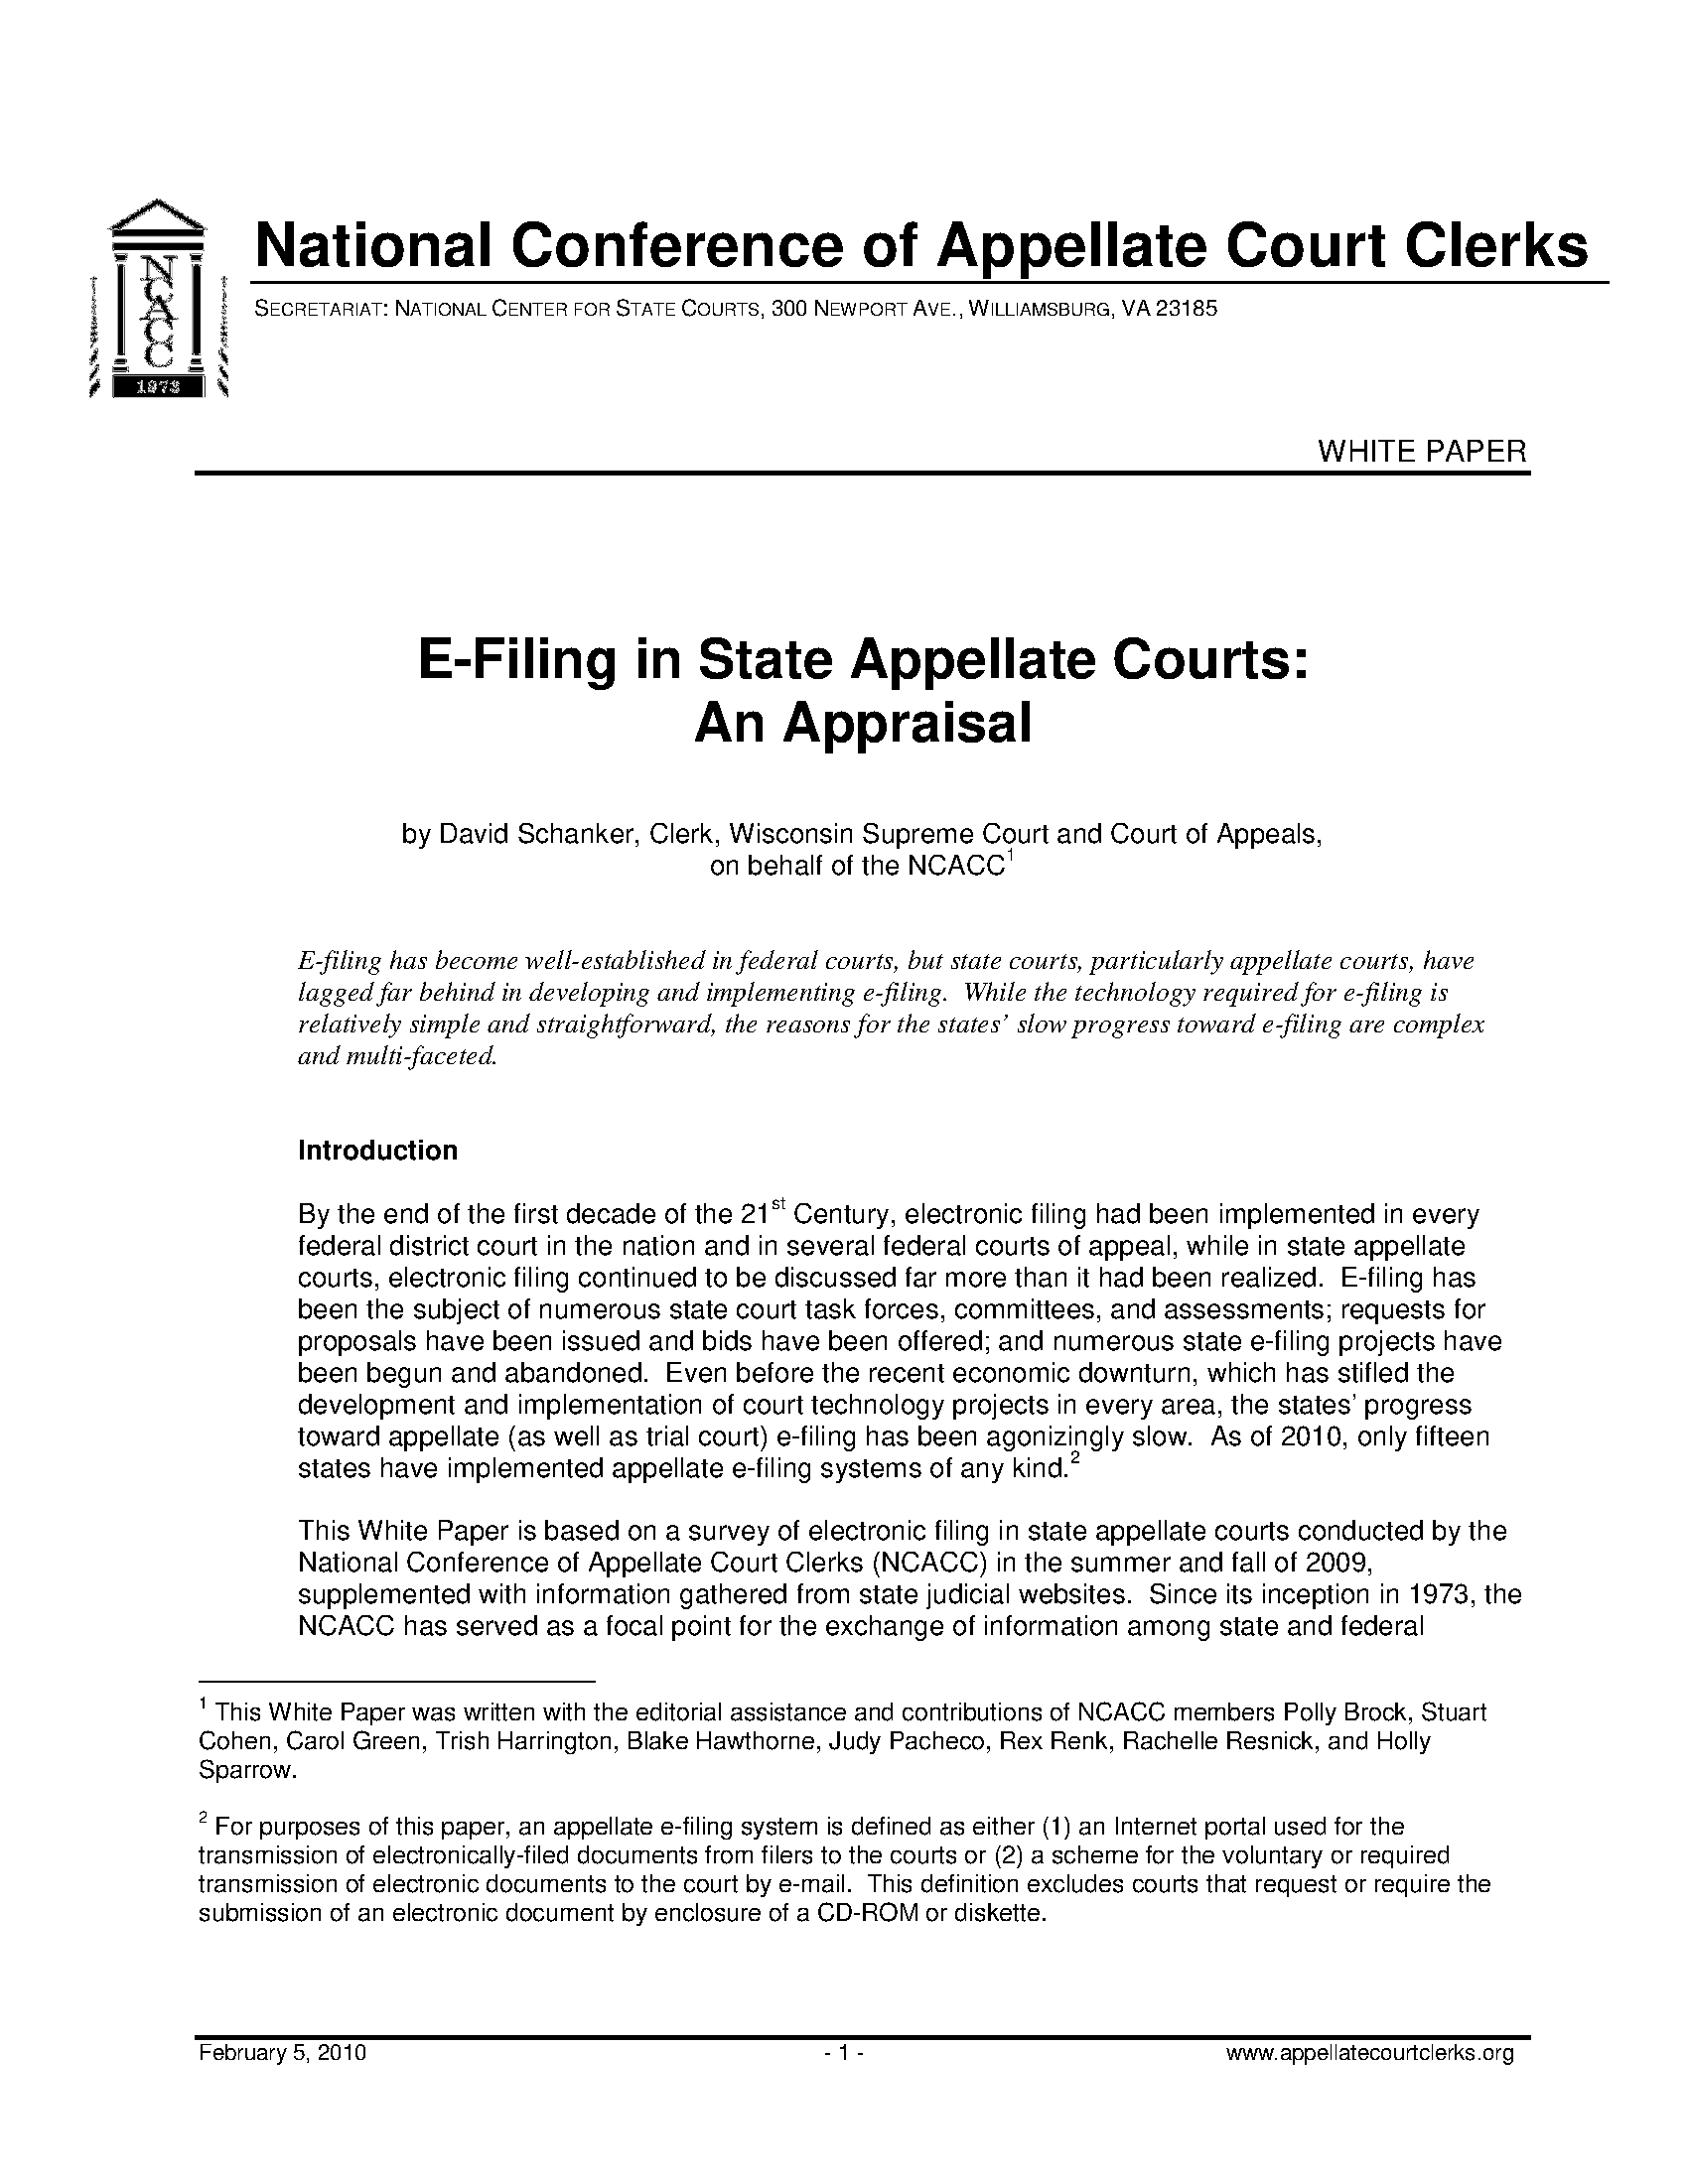 e-filing in state appellate: an appraisal (white paper) - appellate